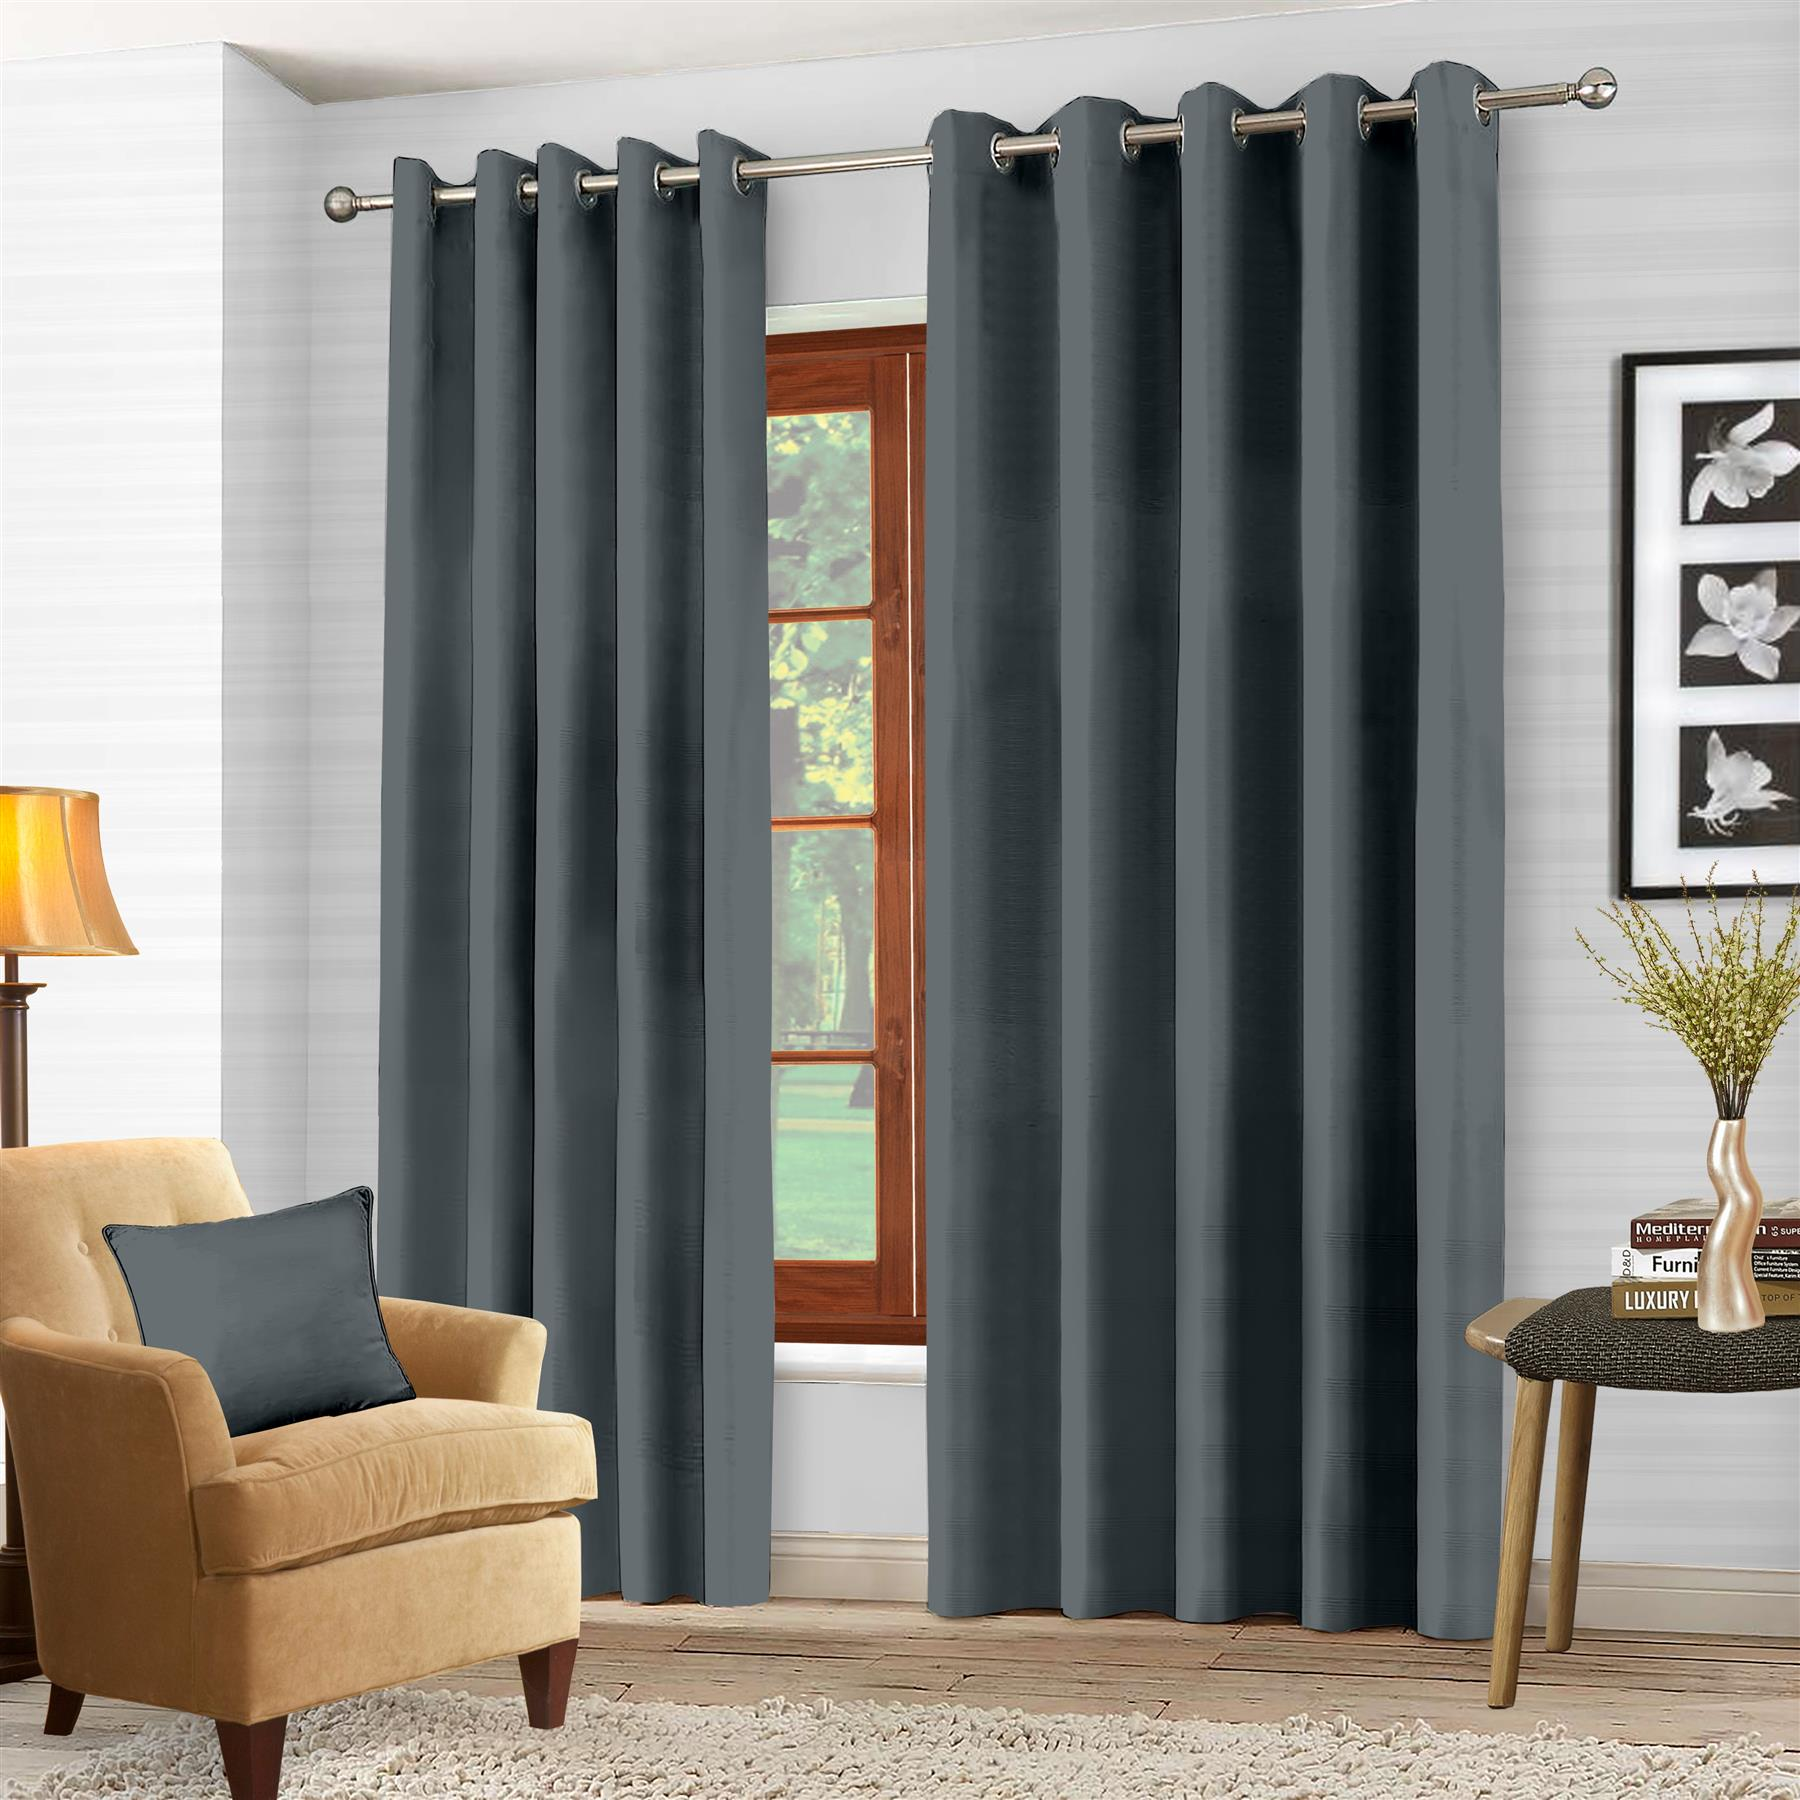 Luxury-Thermal-Blackout-Eyelet-Ring-Top-Curtains-Pair-with-tie-backs thumbnail 16